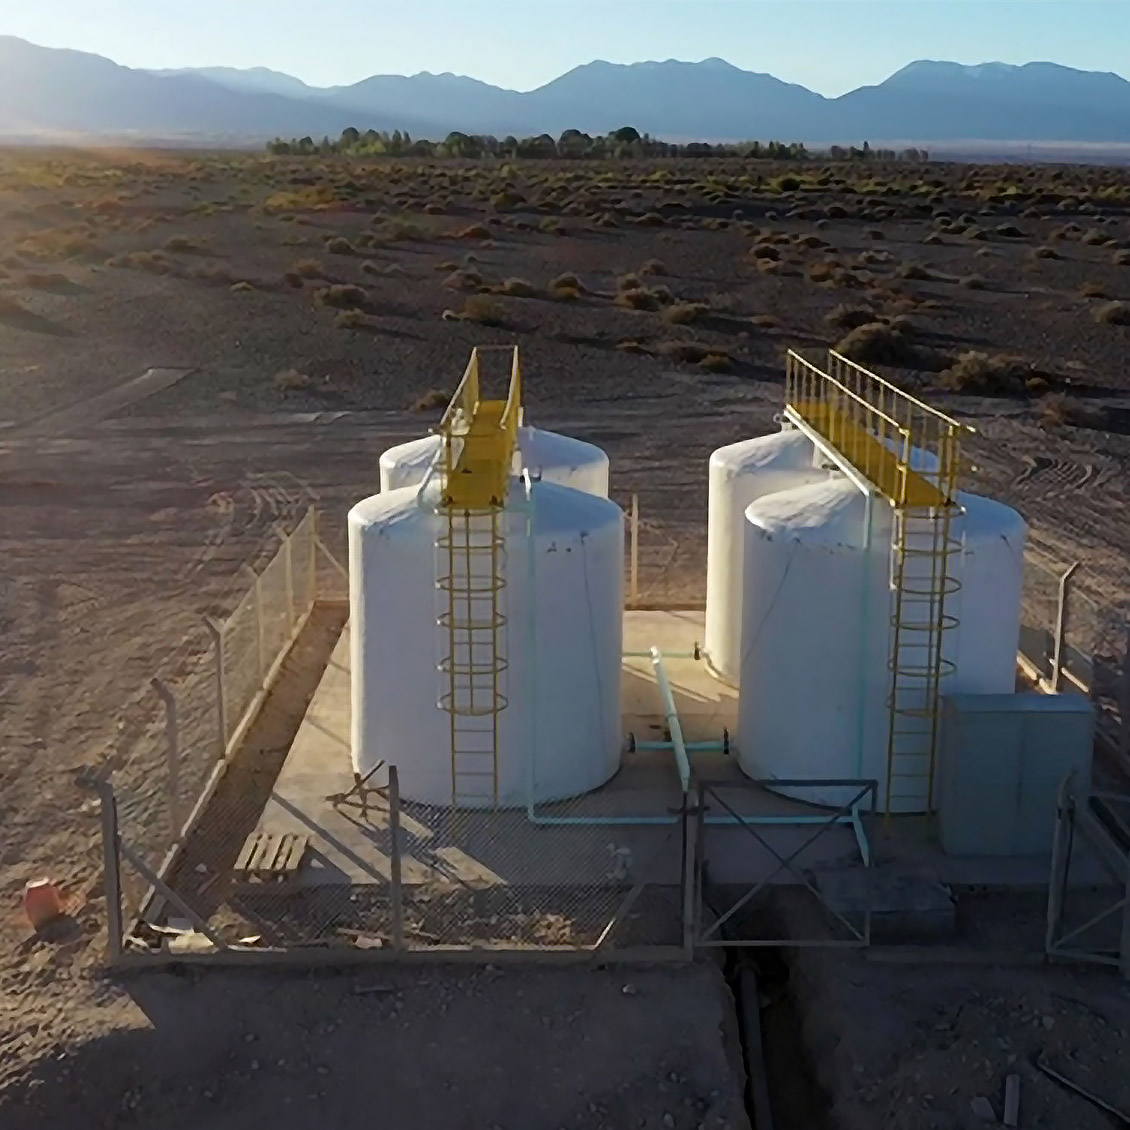 The Las Flores drinking water plant in Argentina was opened in May 2020 to improve access to water for the communities near the Veladero gold mine.